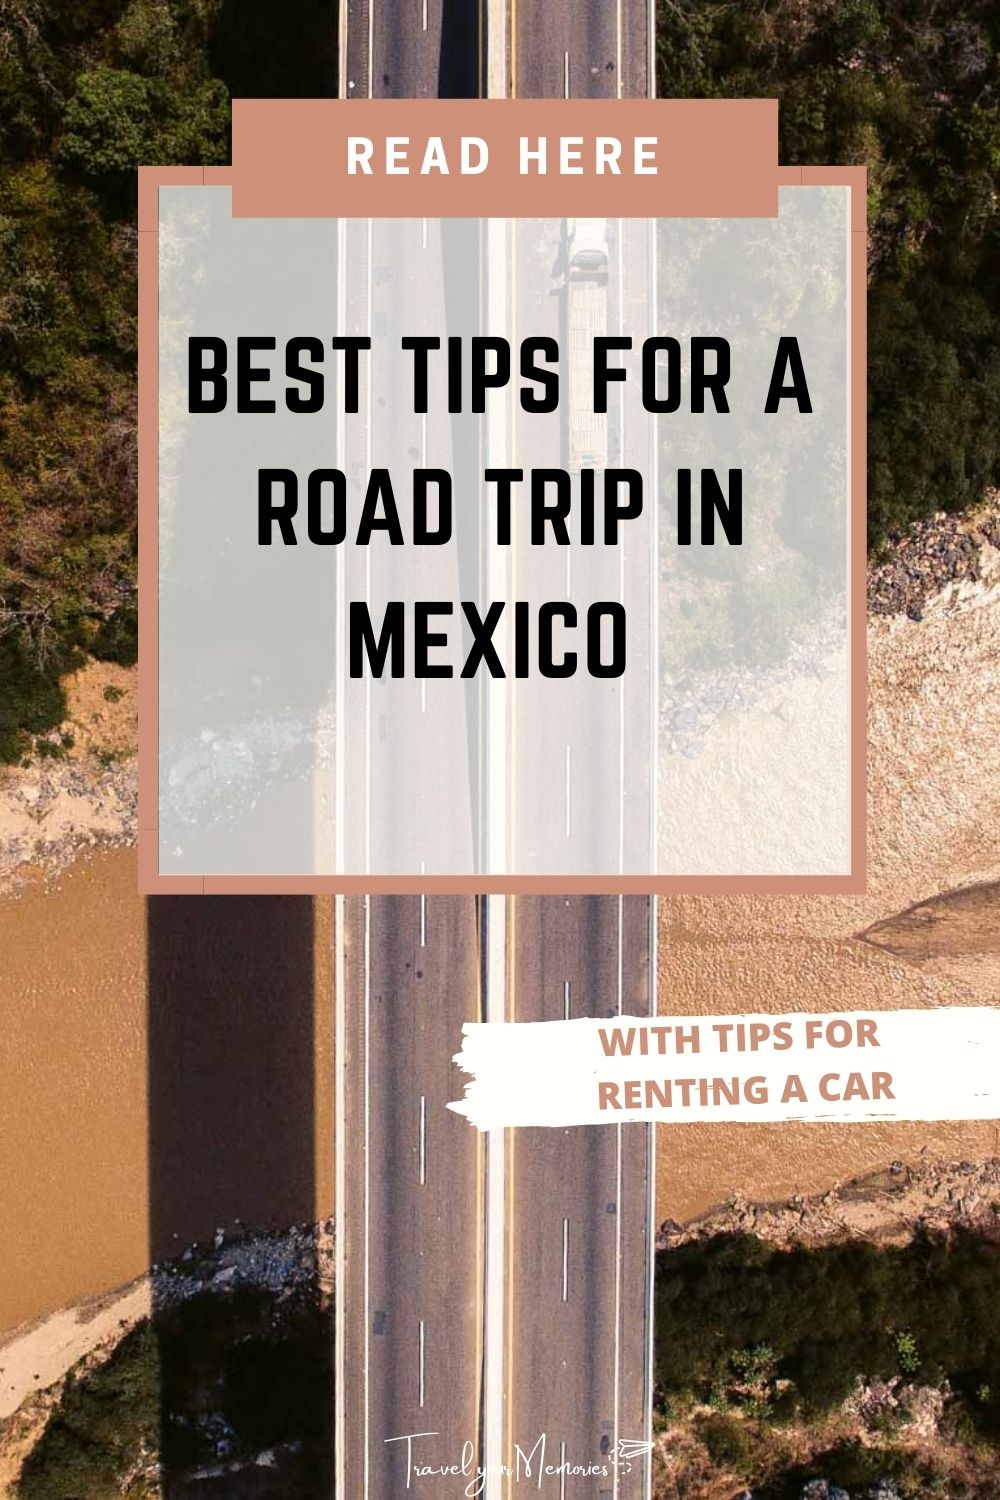 Road trip Mexico? #1 Best tips for renting a car in Mexico